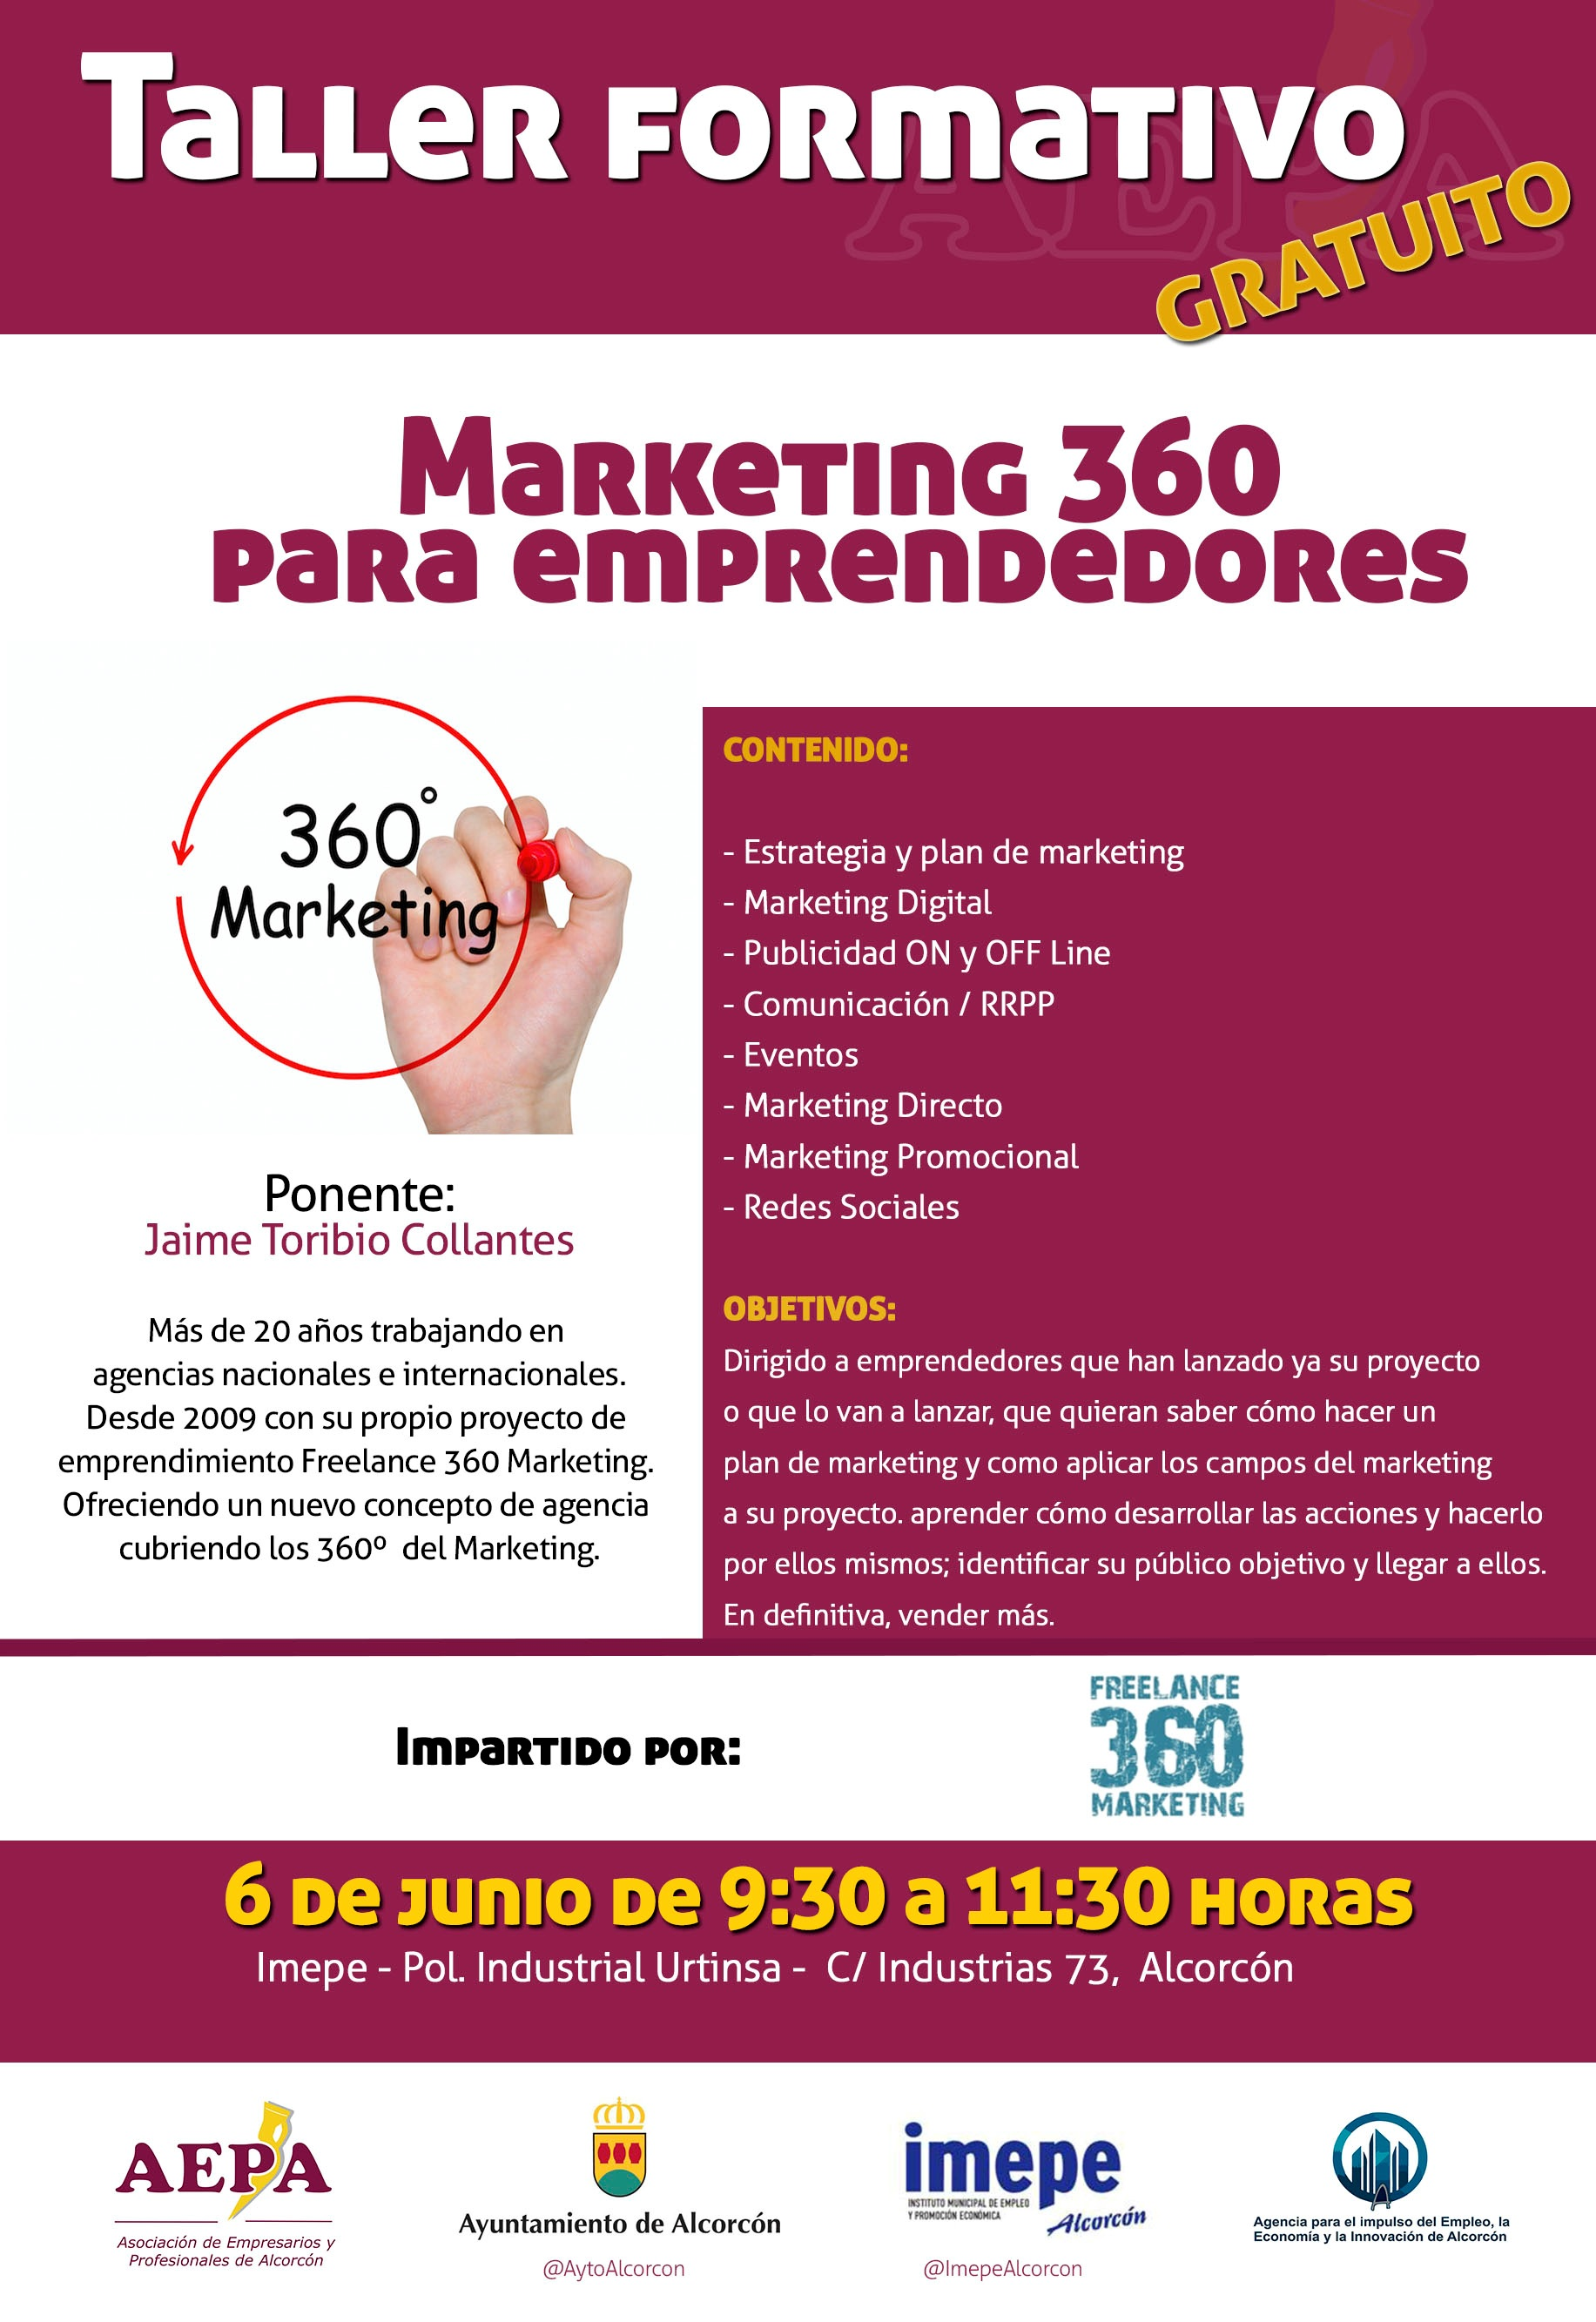 Taller formativo MARKETING 360 para emprendedores IMEPE Alcorcón